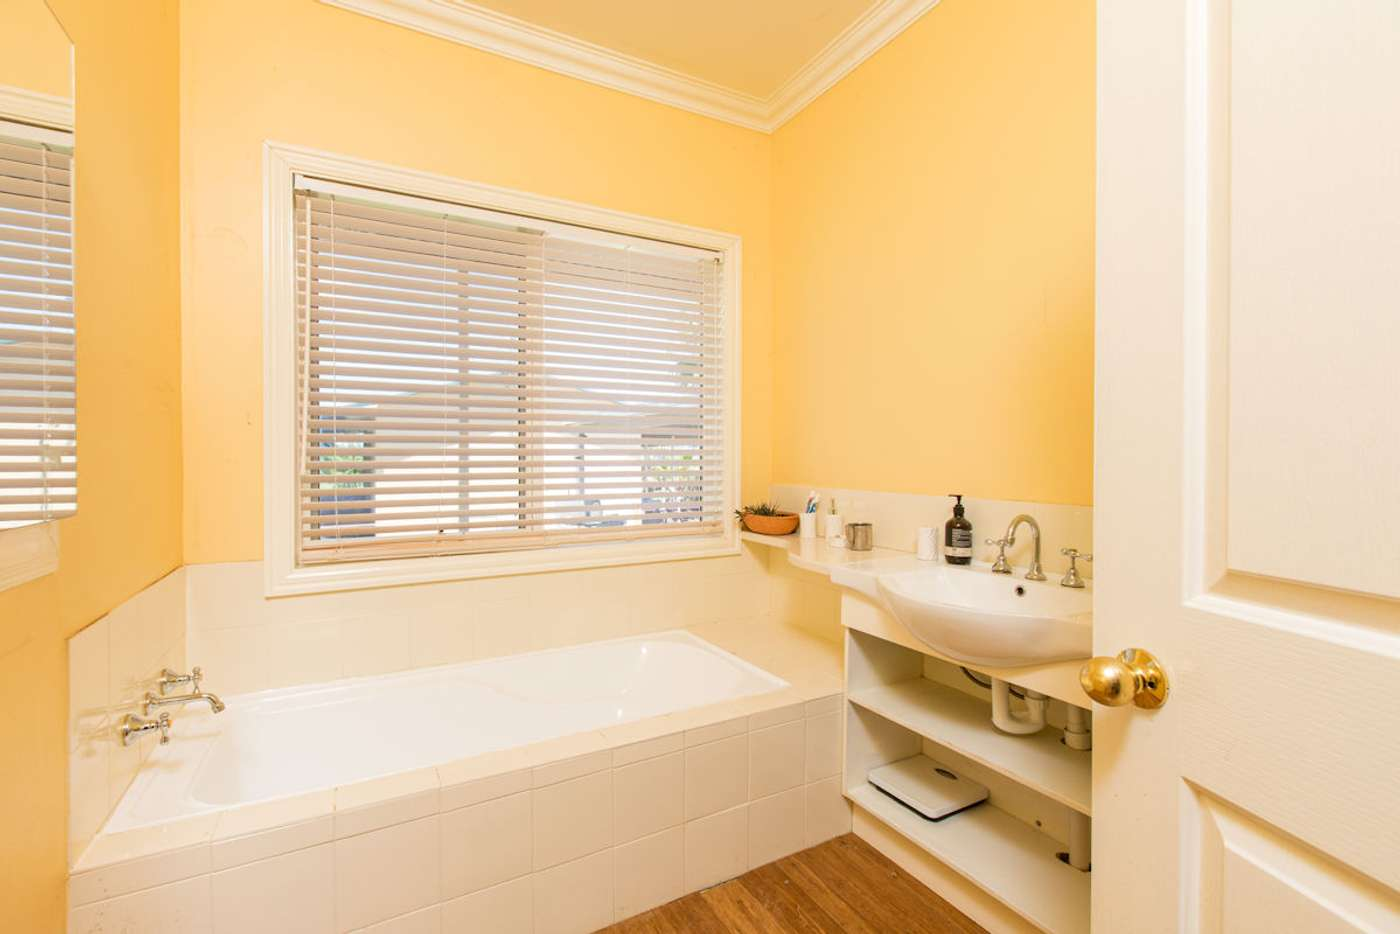 Fifth view of Homely house listing, 3510 Deakin Avenue, Mildura VIC 3500